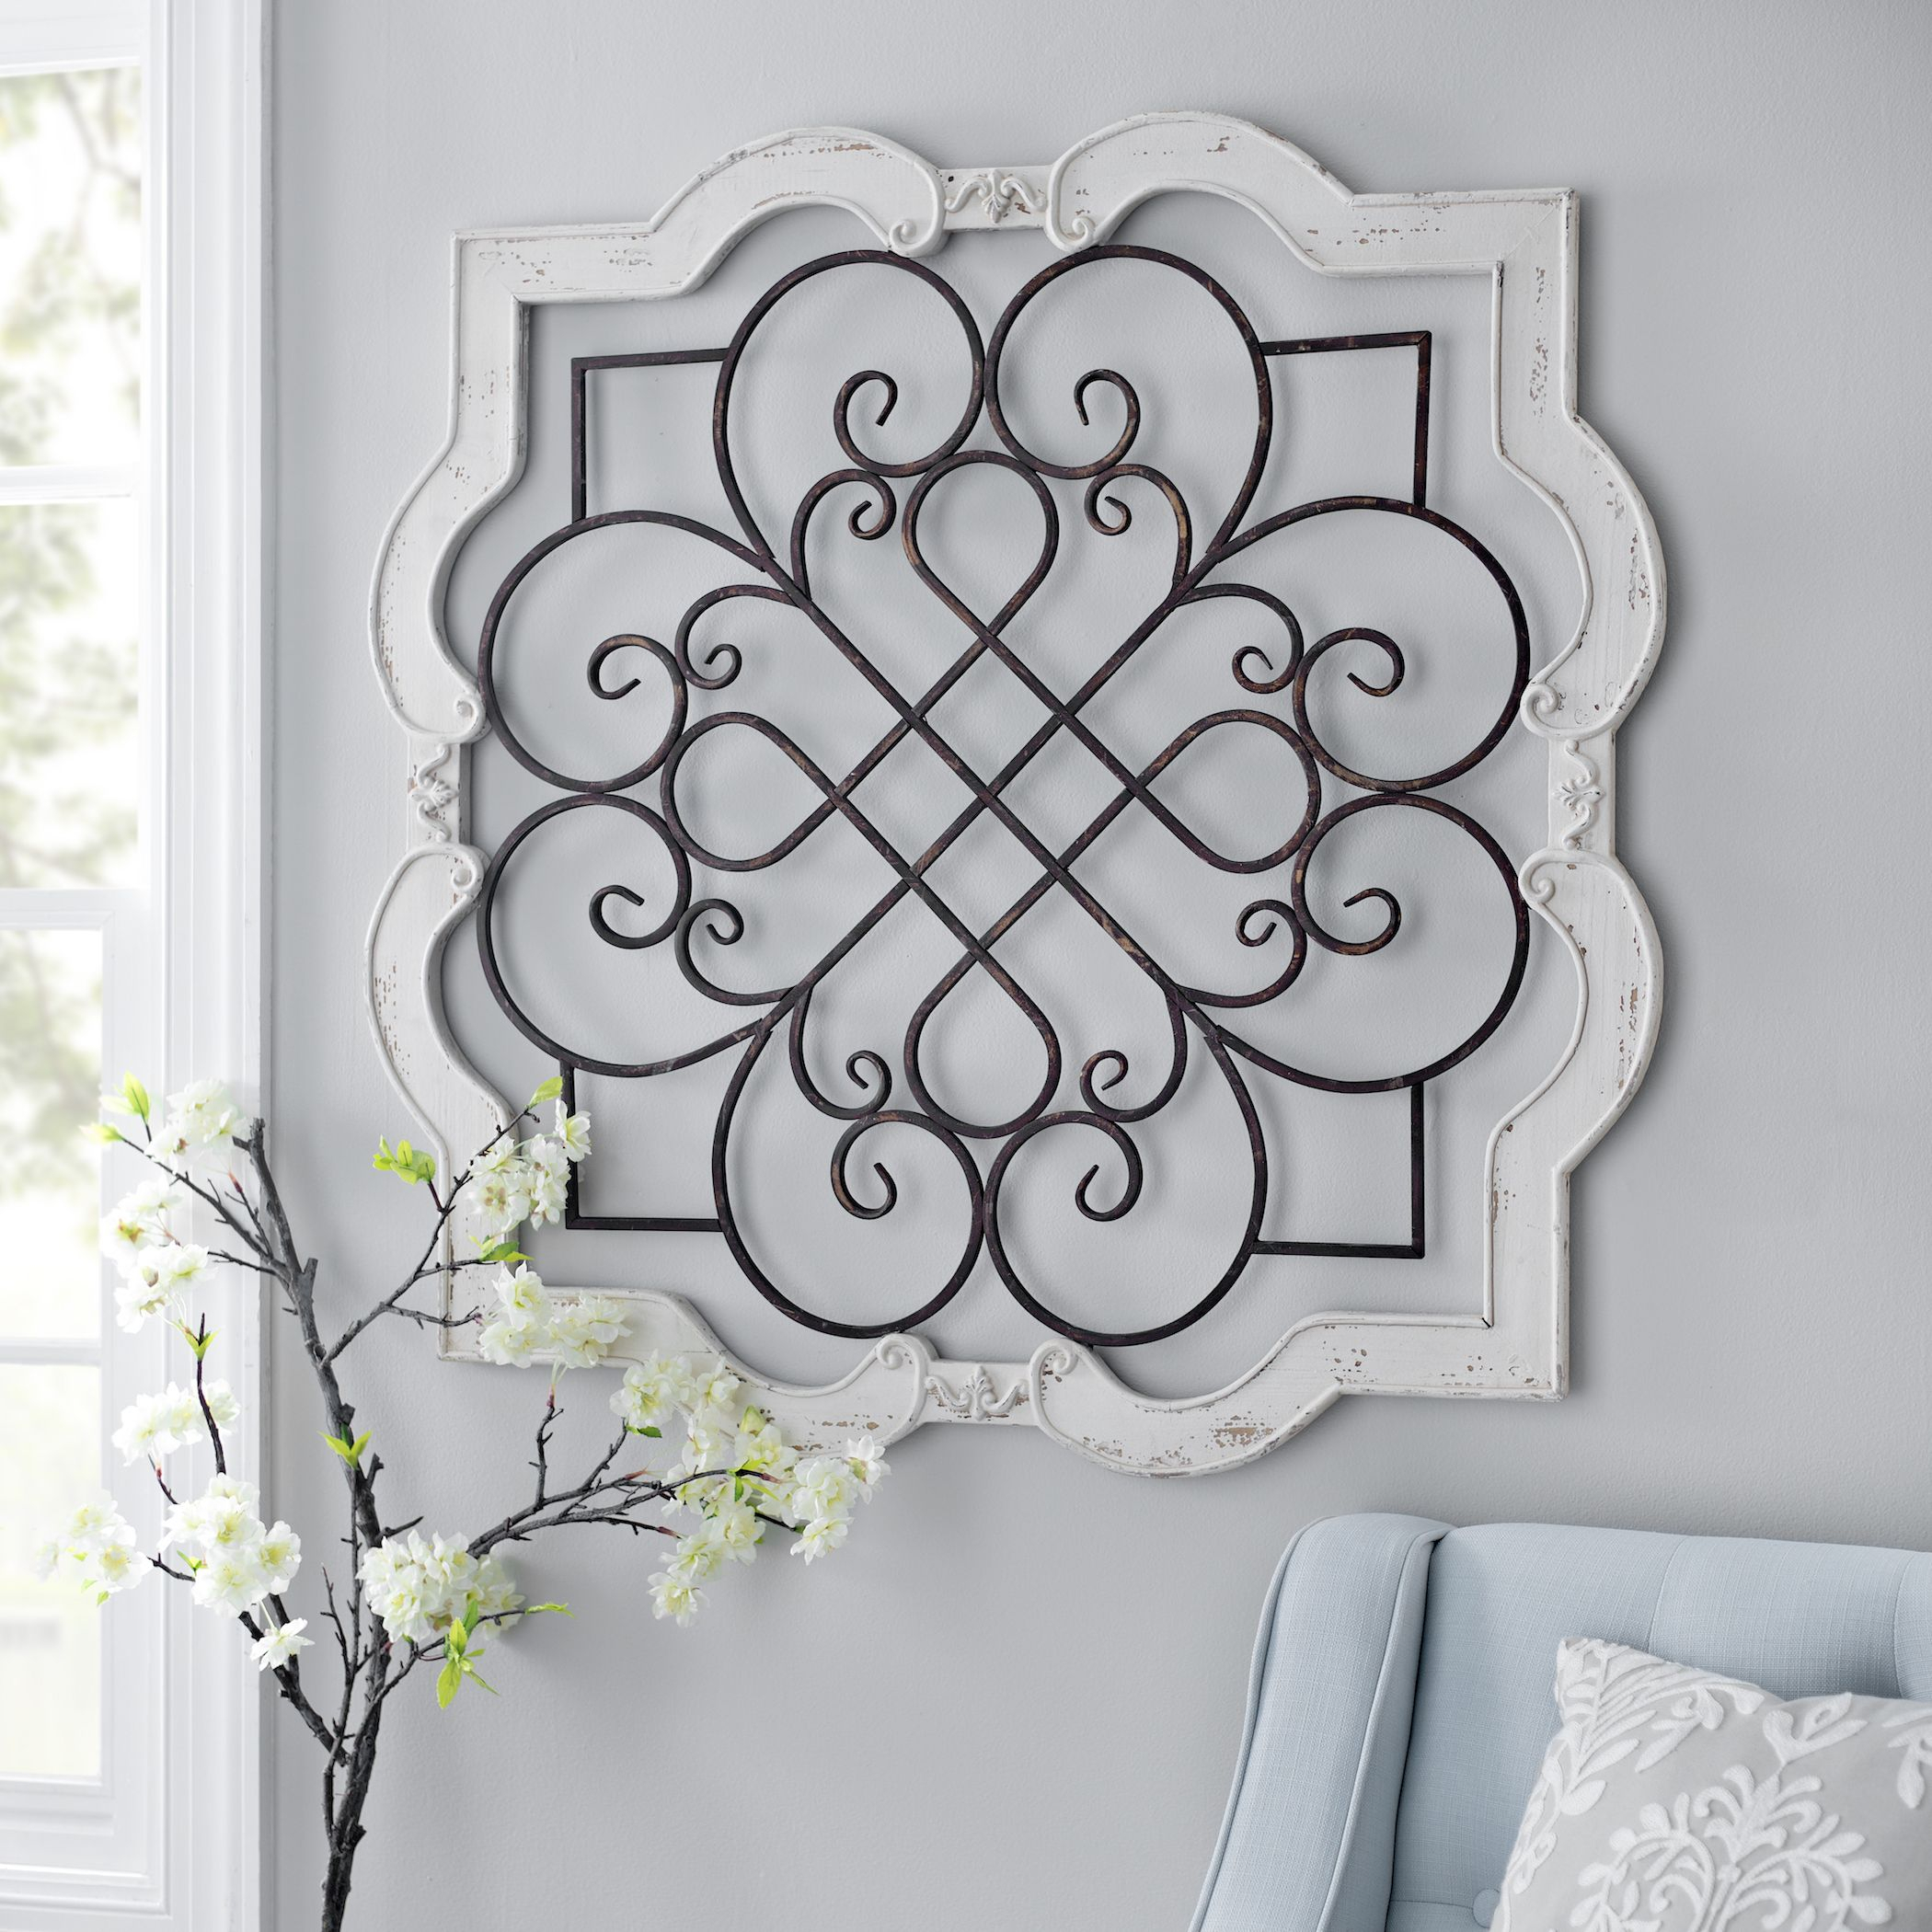 1 Piece Ortie Panel Wall Decor With Fashionable Shabby Chic Farmhouse Cream Wood Iron Scroll Wall Door Sculpture (View 17 of 20)